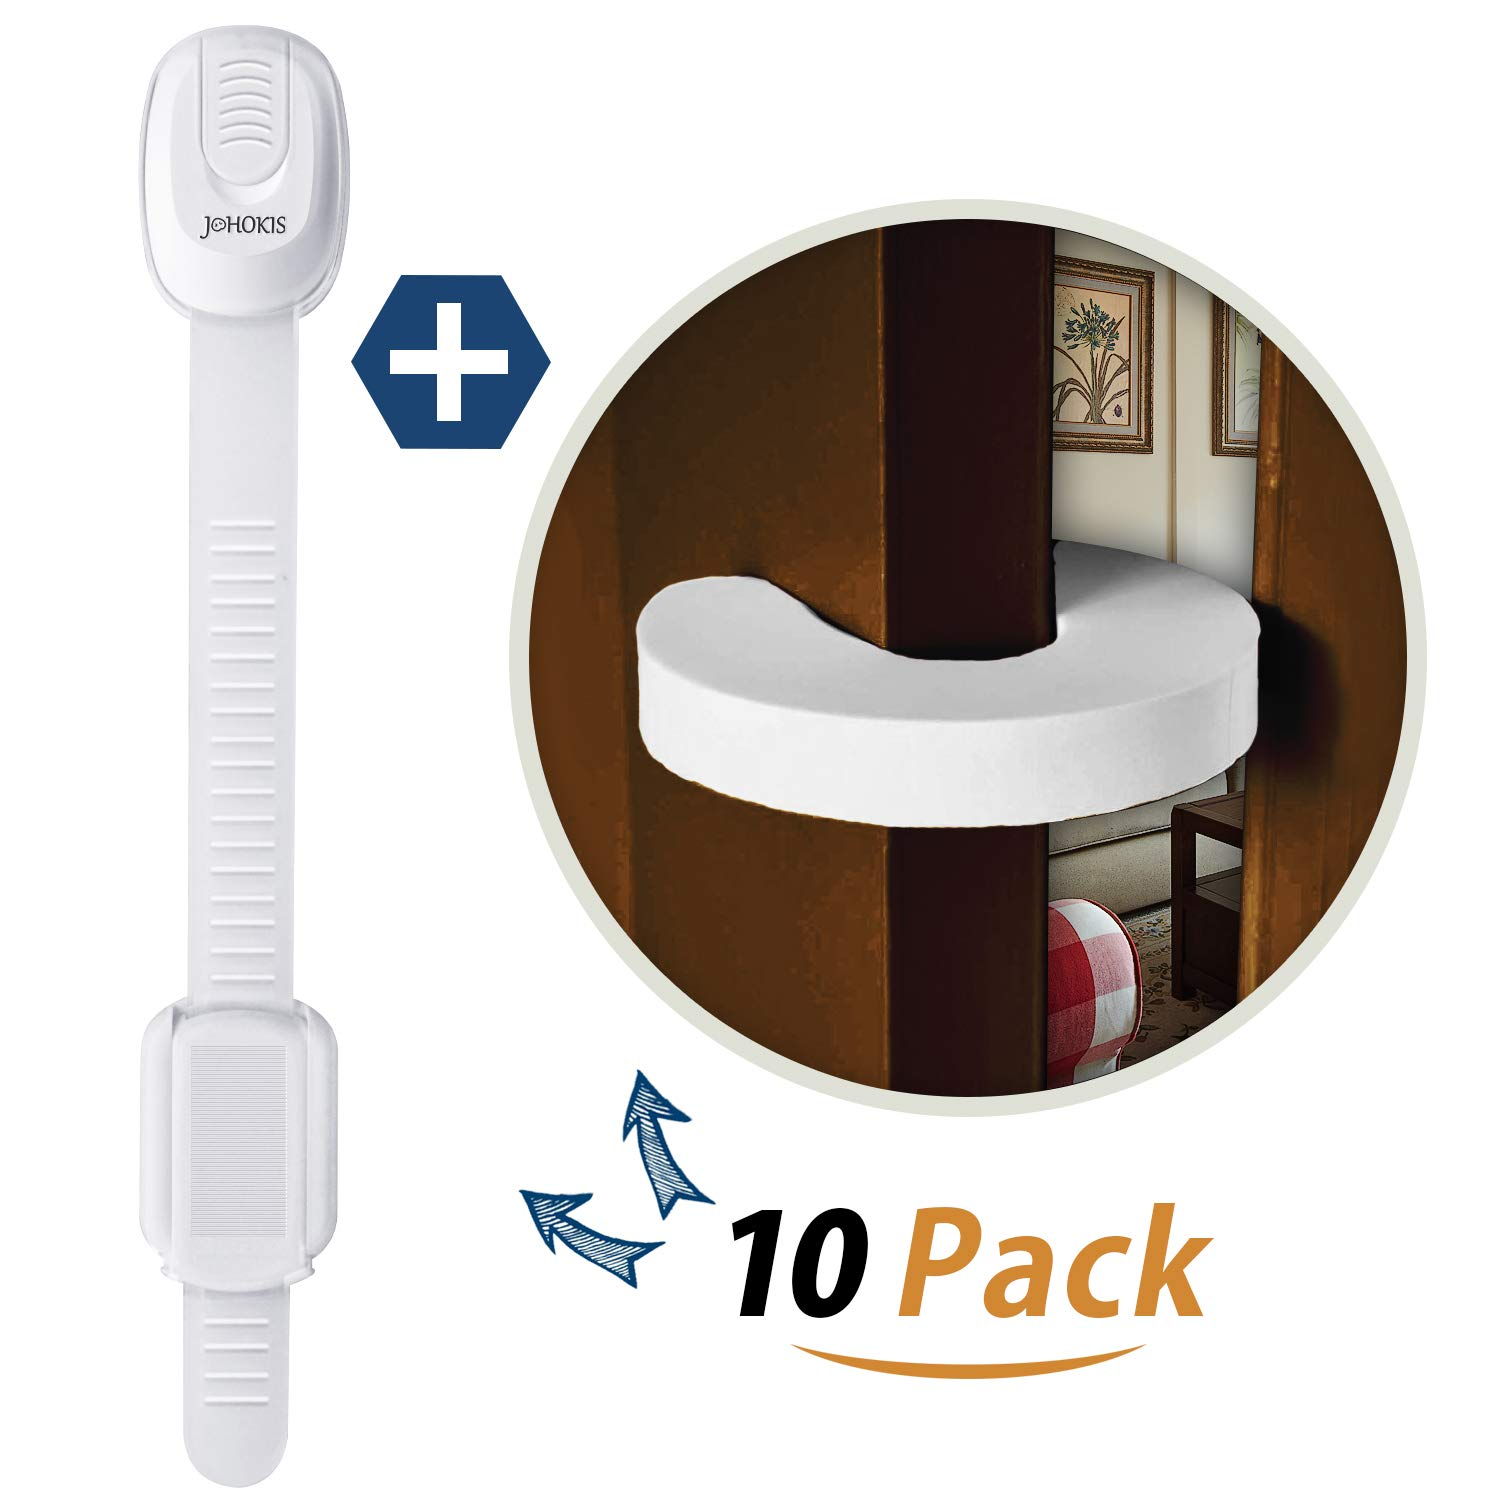 Johokis Child Safety Cabinet Locks | (8-Pack) 2 Free Extra Door Stopper |Baby & Kid Proof Drawers, Cabinets, Oven, Toilet Seat,Fridge,Closet|Adhesive Safety Latches |